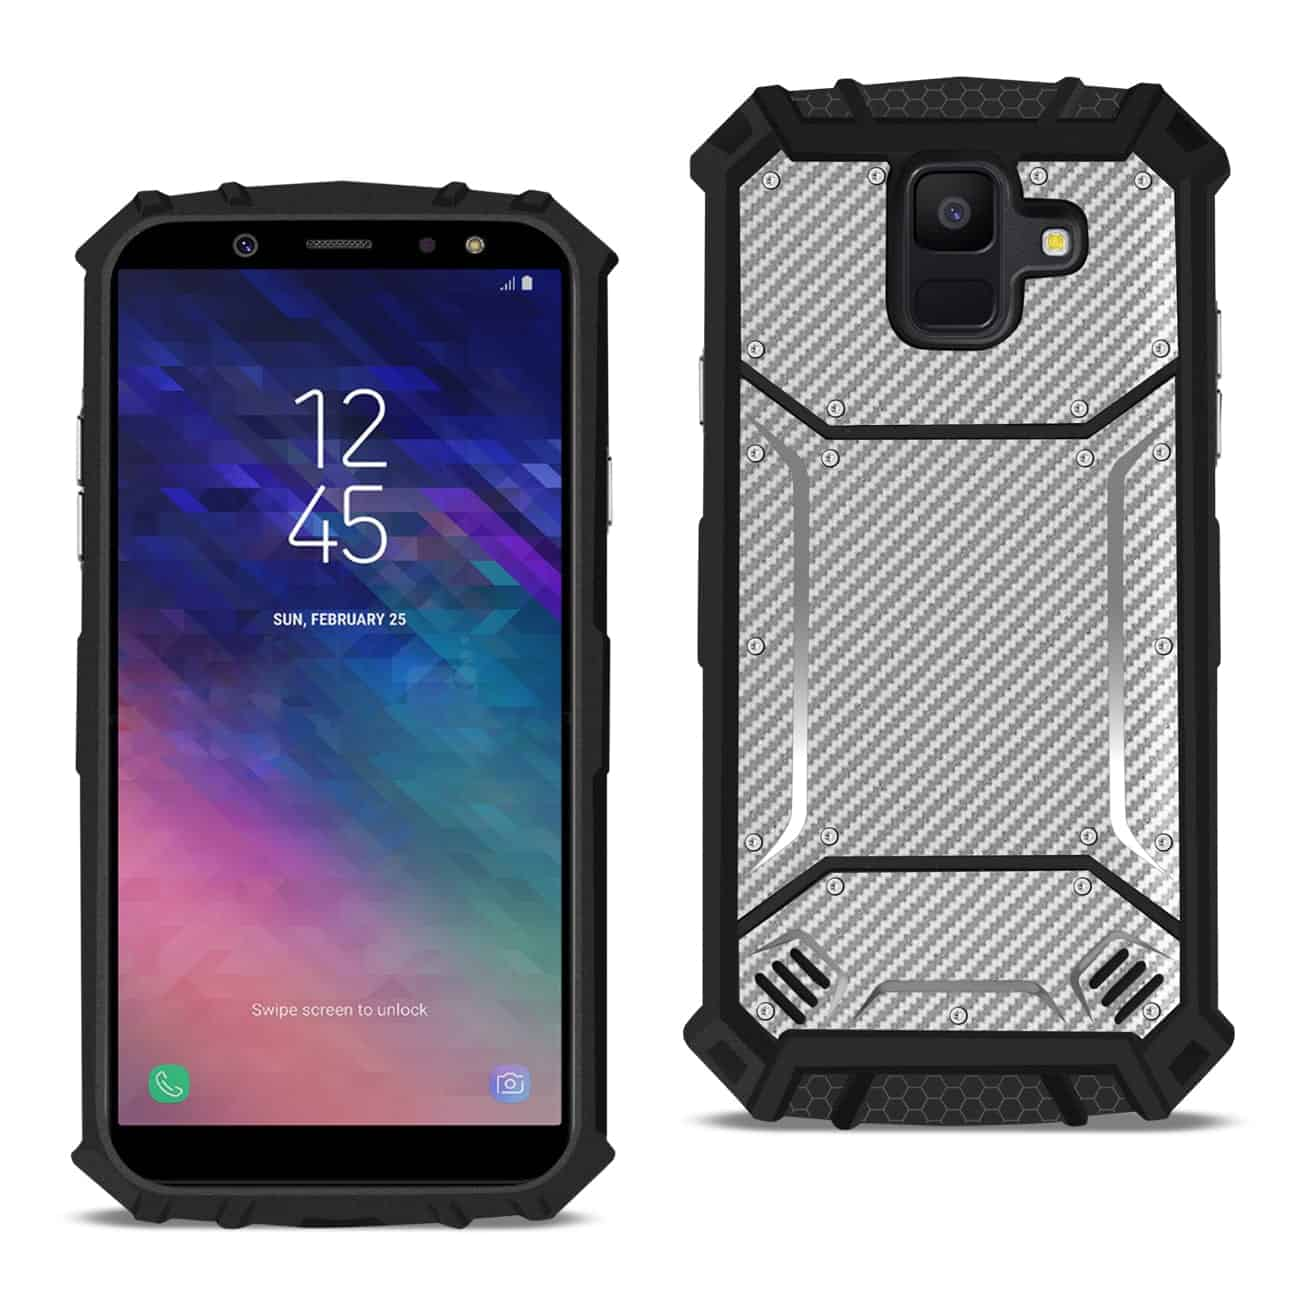 Samsung Galaxy A6 Carbon Fiber Hard-shell Case In Gray